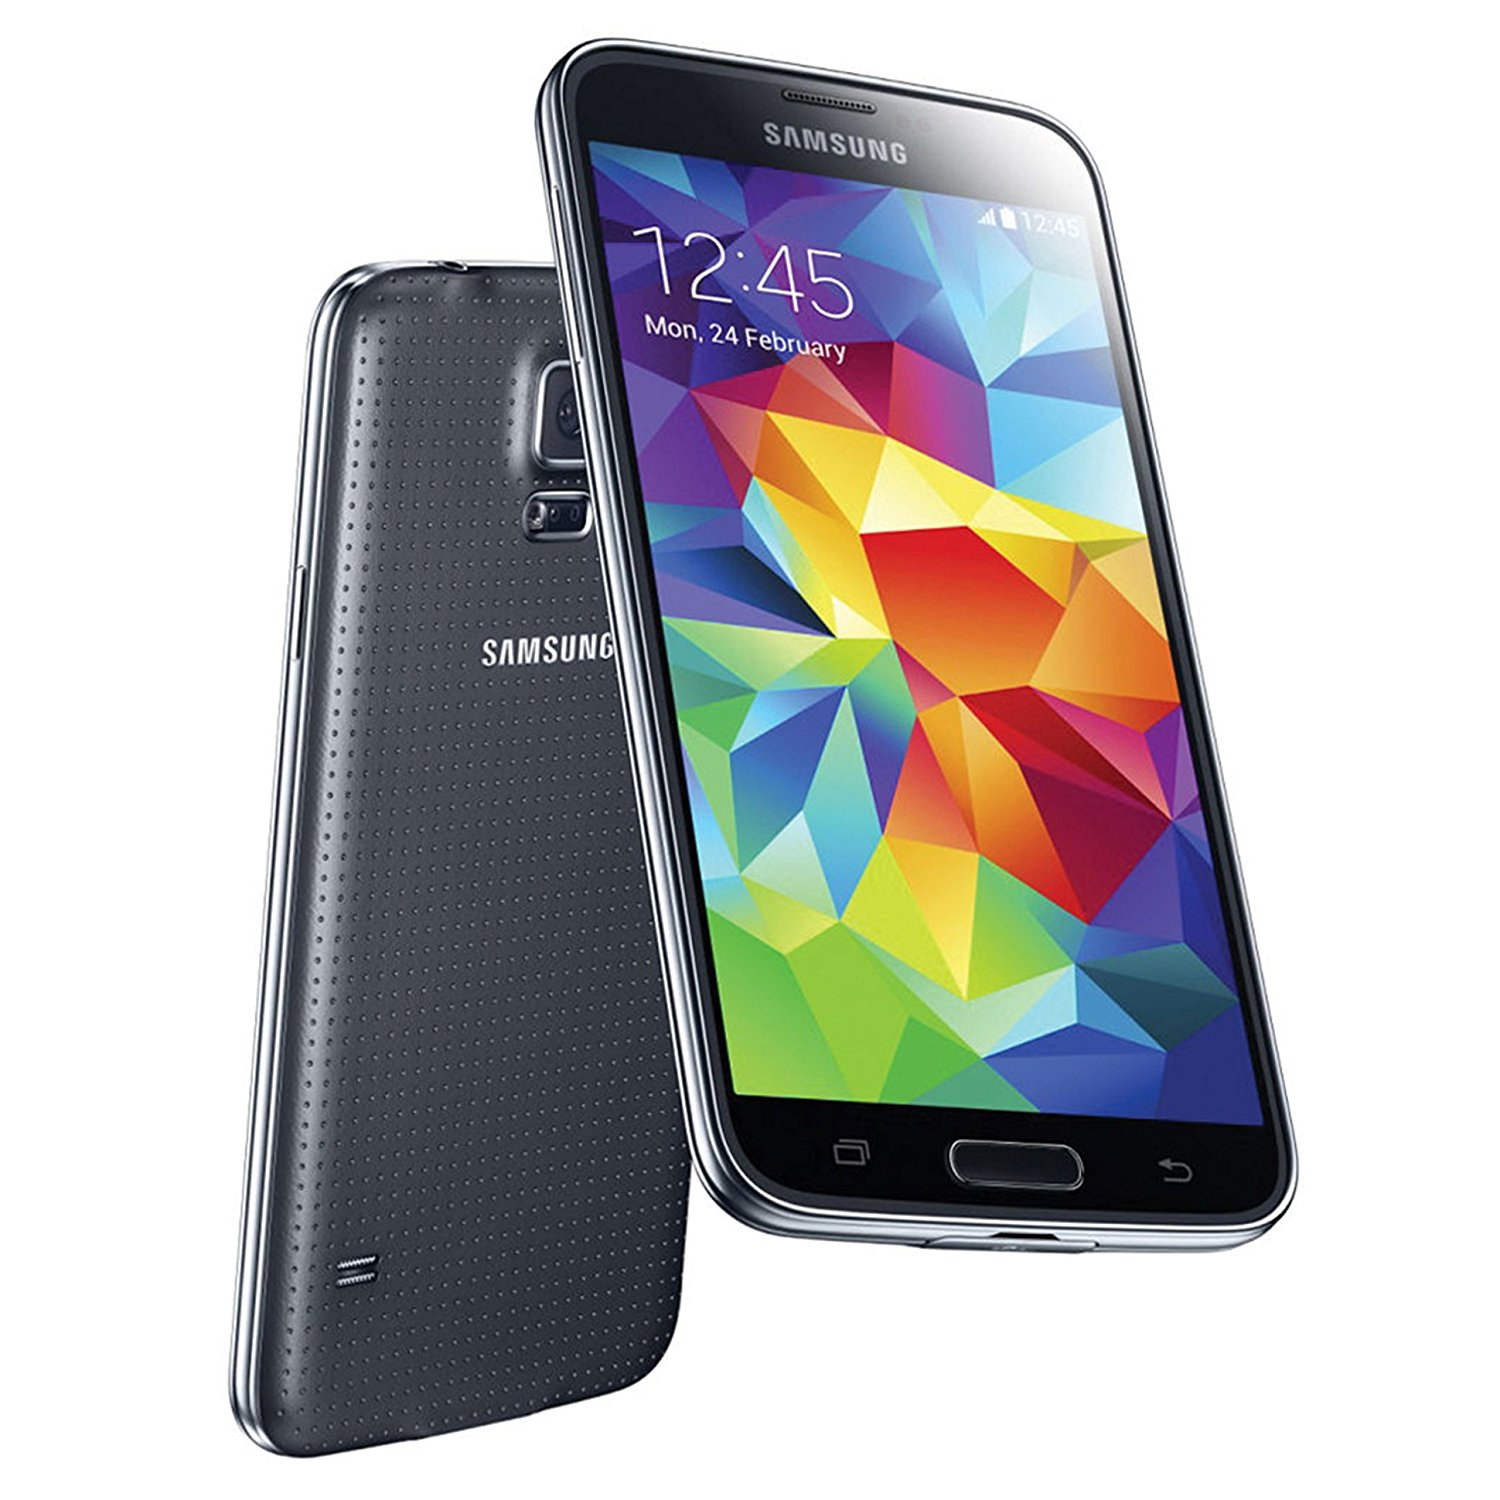 samsung galaxy s5 images and price